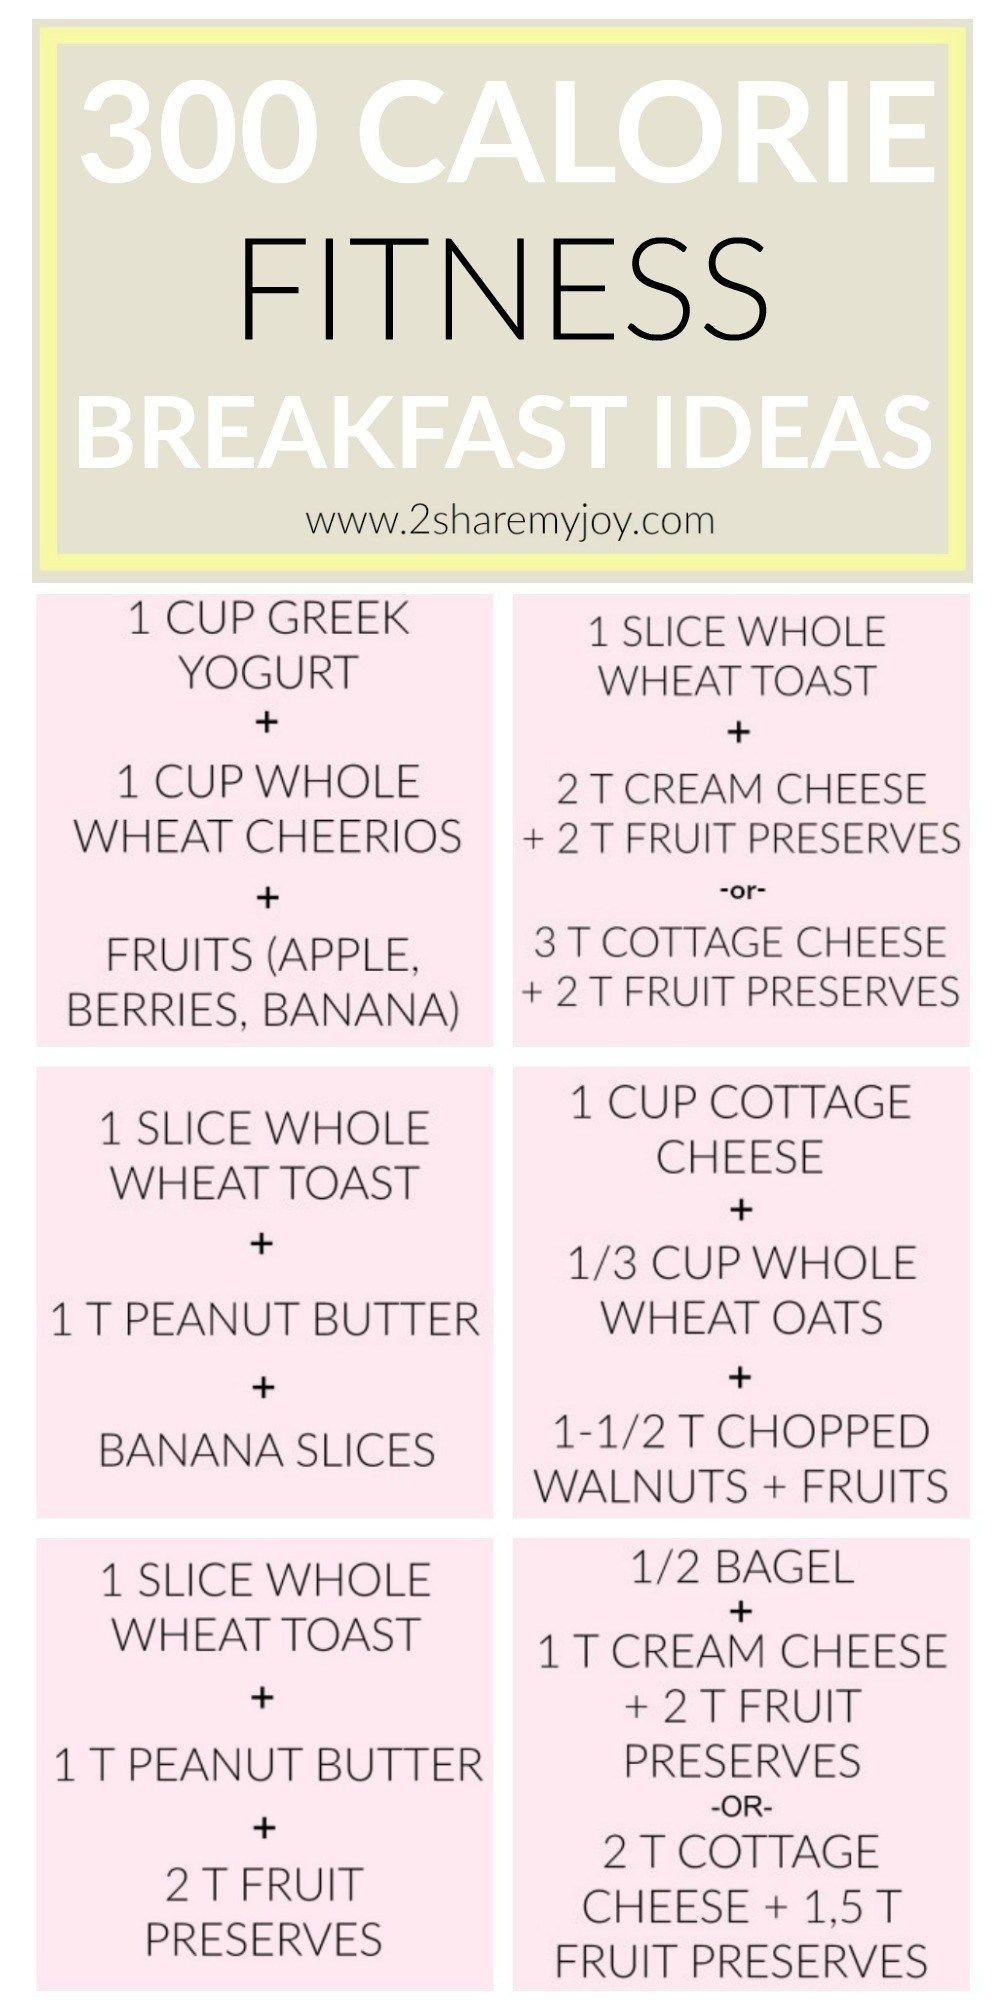 300 Calorie Breakfast Ideas for your healthy morning meal. They are easy Fitness meals that you can also eat for lunch or afternoon. #400caloriemeals